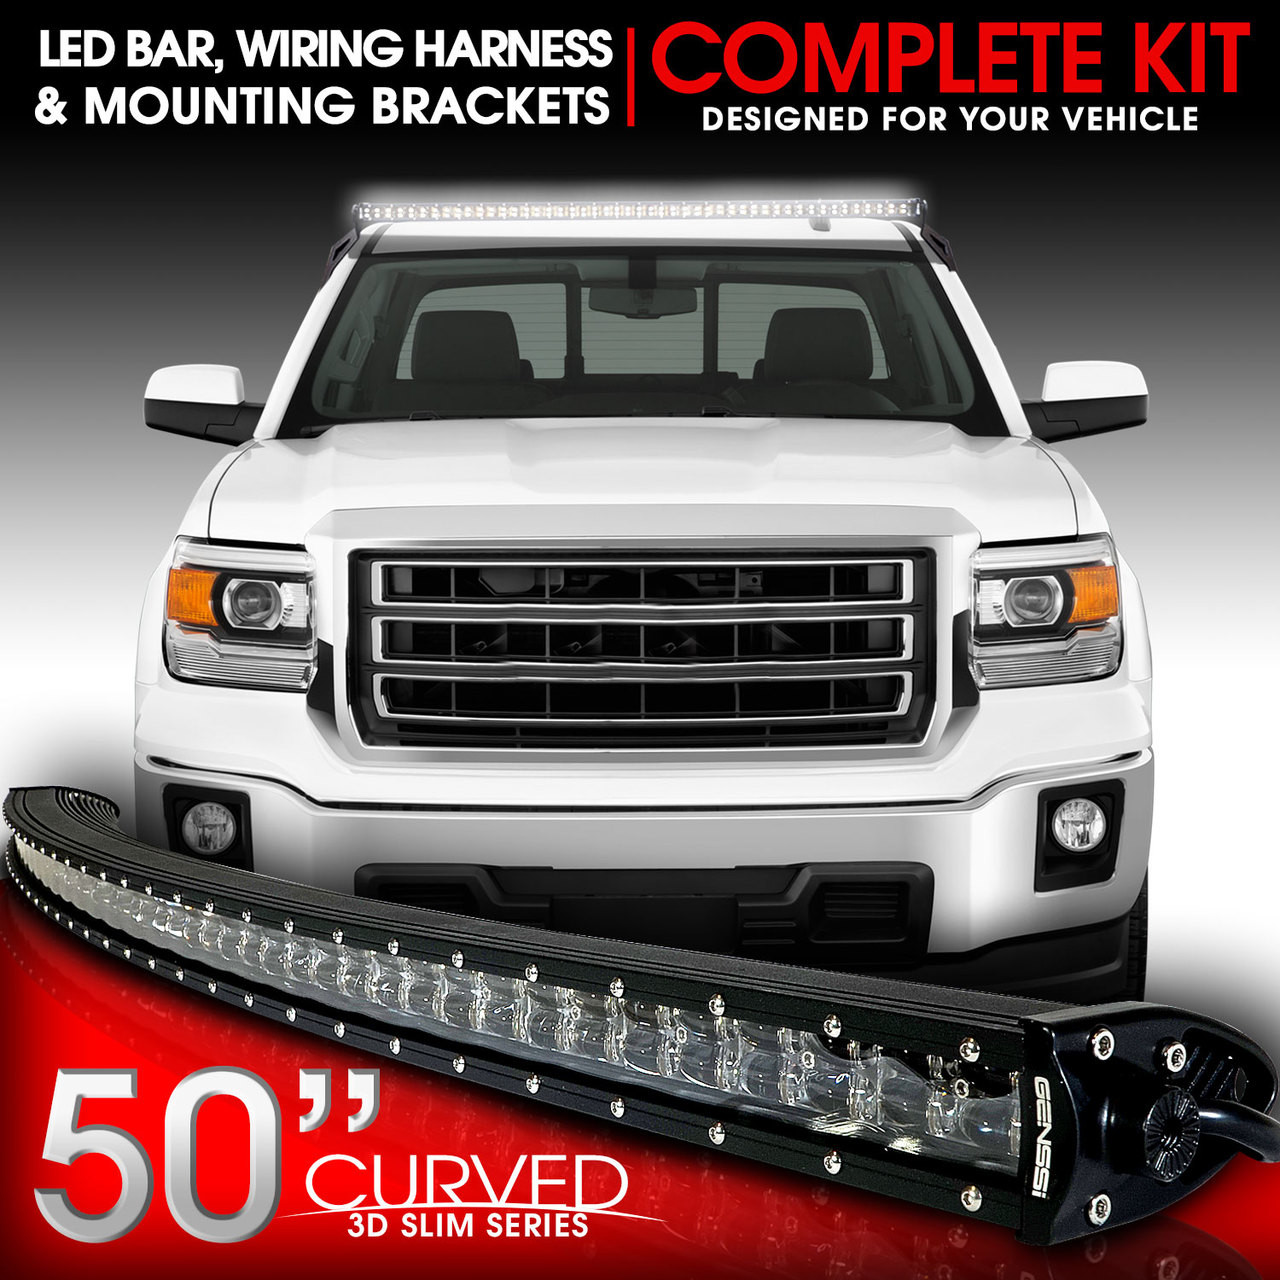 Wiring Harness For 2014 Gmc Sierra Diagram Libraries Silverado Ebay Led Light Bar Curved 288w 50 Inches Bracket Kit Forled